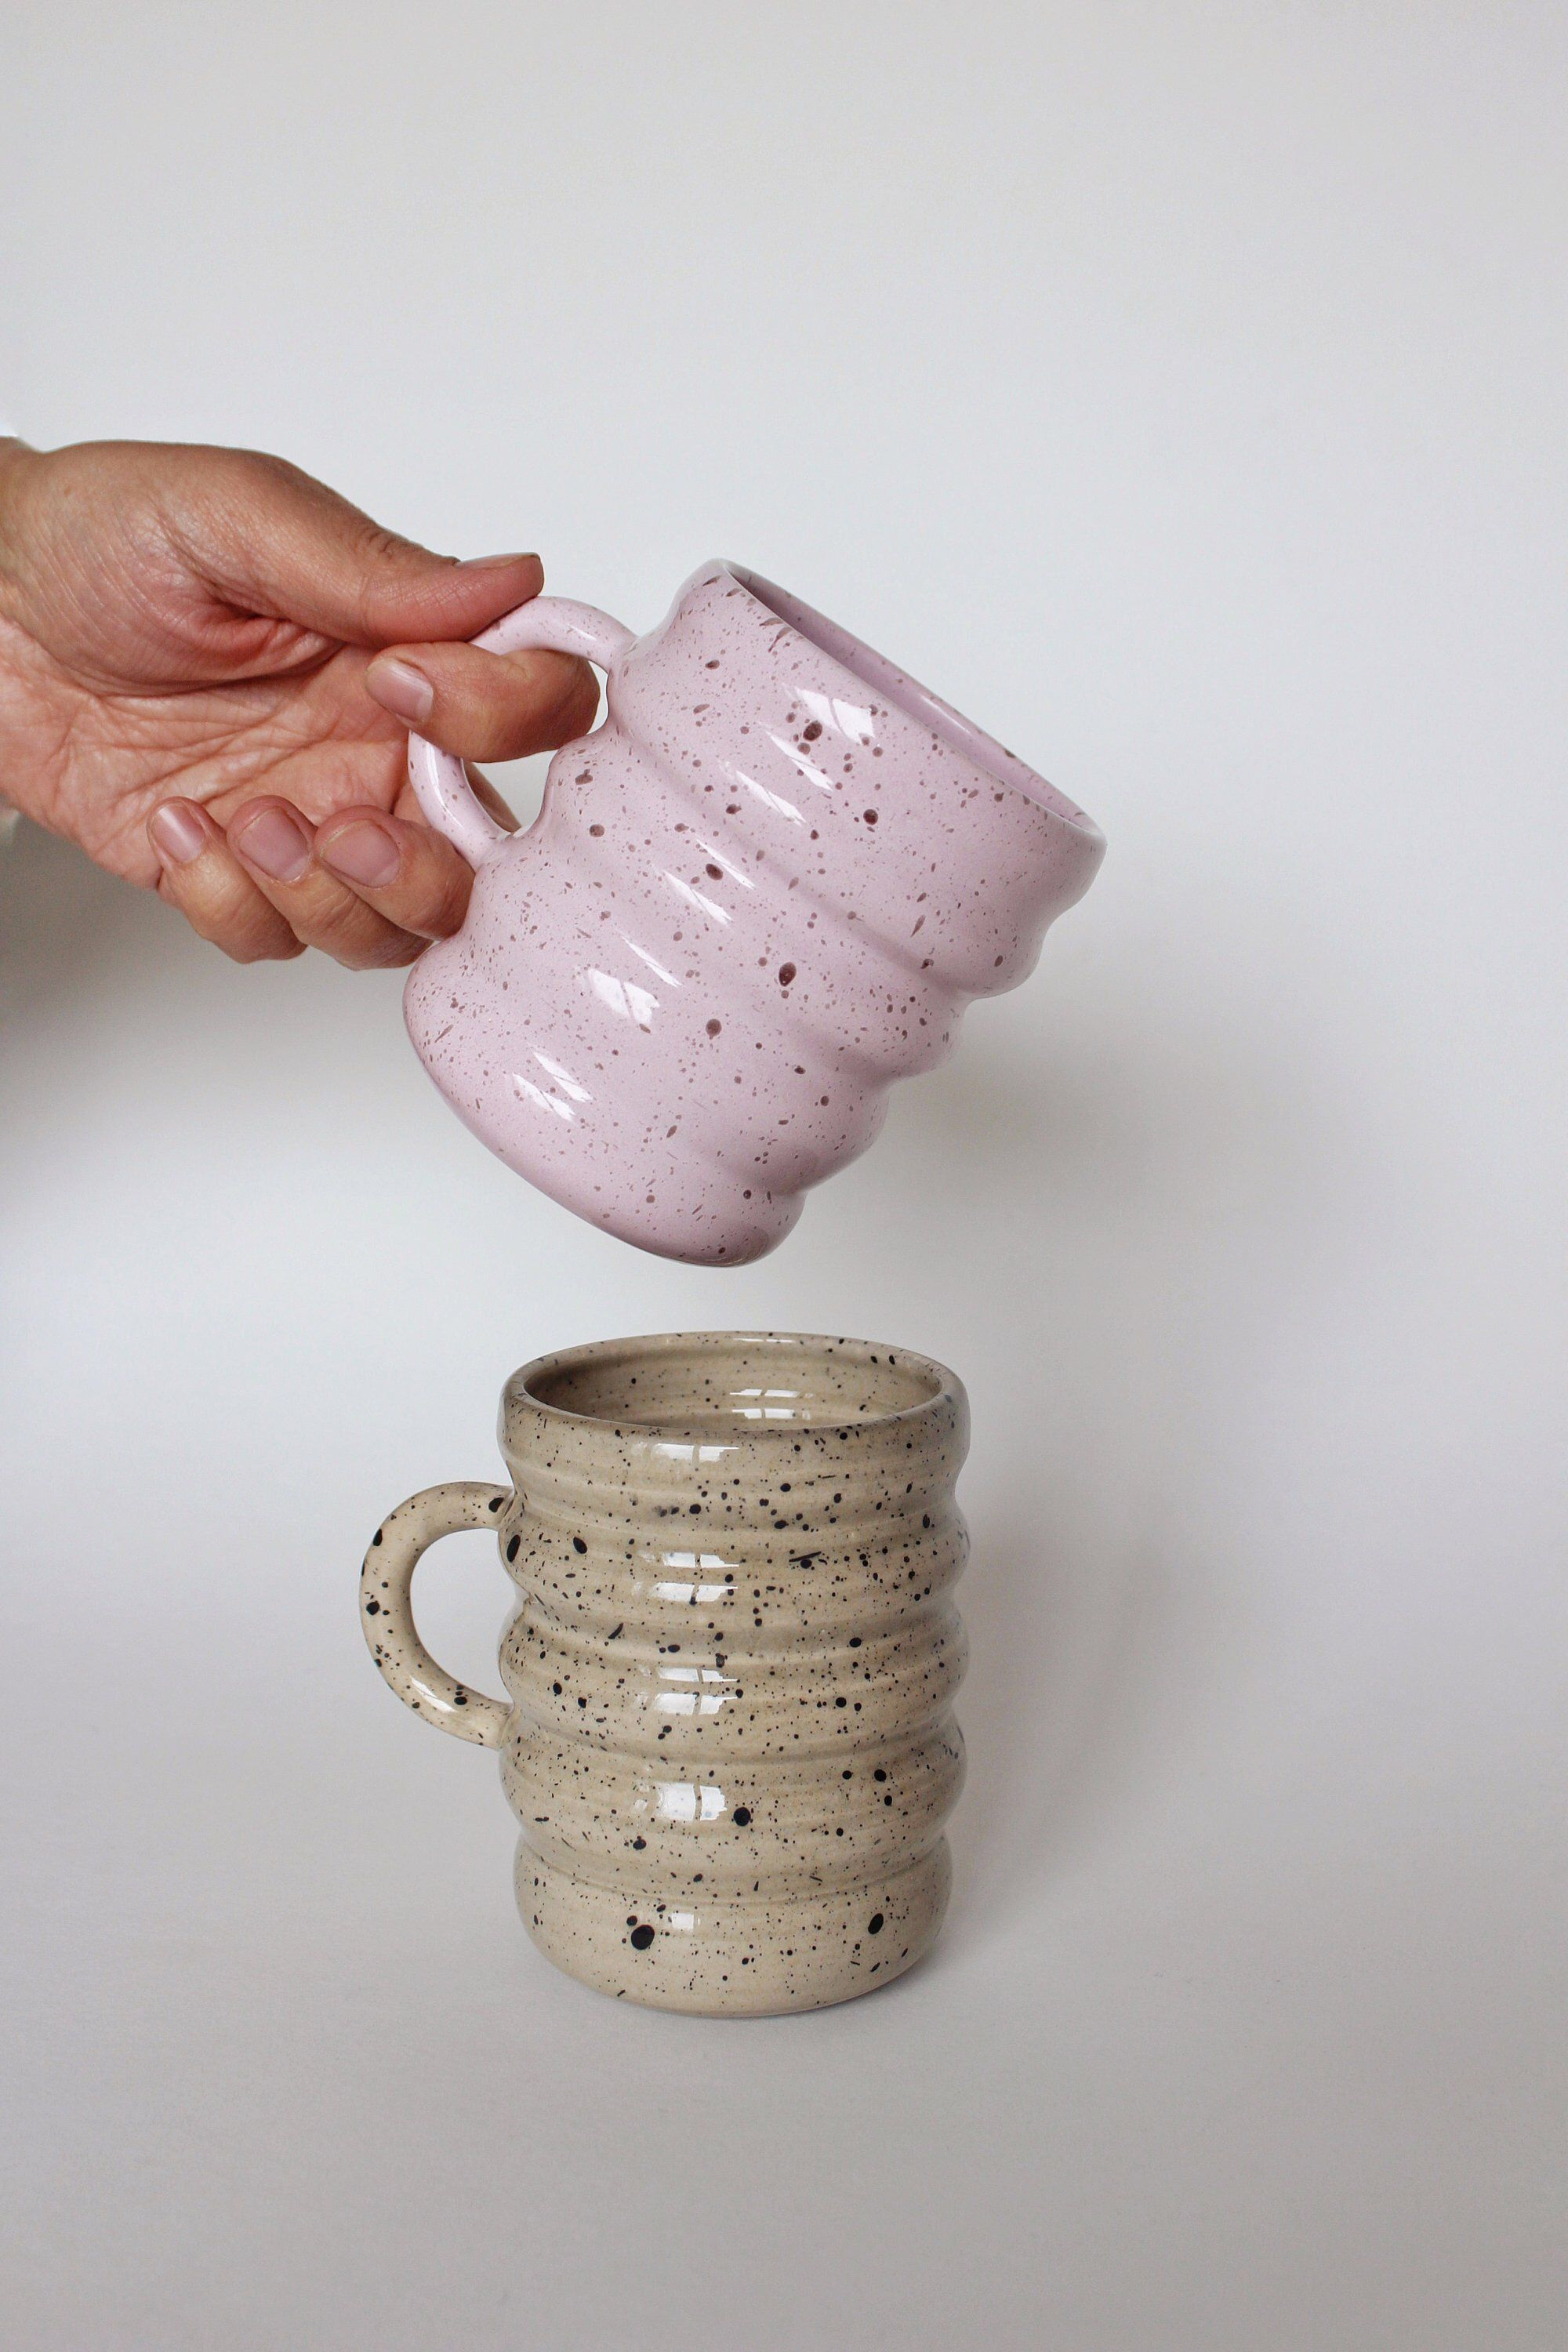 Large pottery pink coffee mug, Handmade pottery mugs, Ceramic coffee mug, Stoneware coffee mug, Unique coffee cup, Tea cup, Coffee gift #uniquecoffee